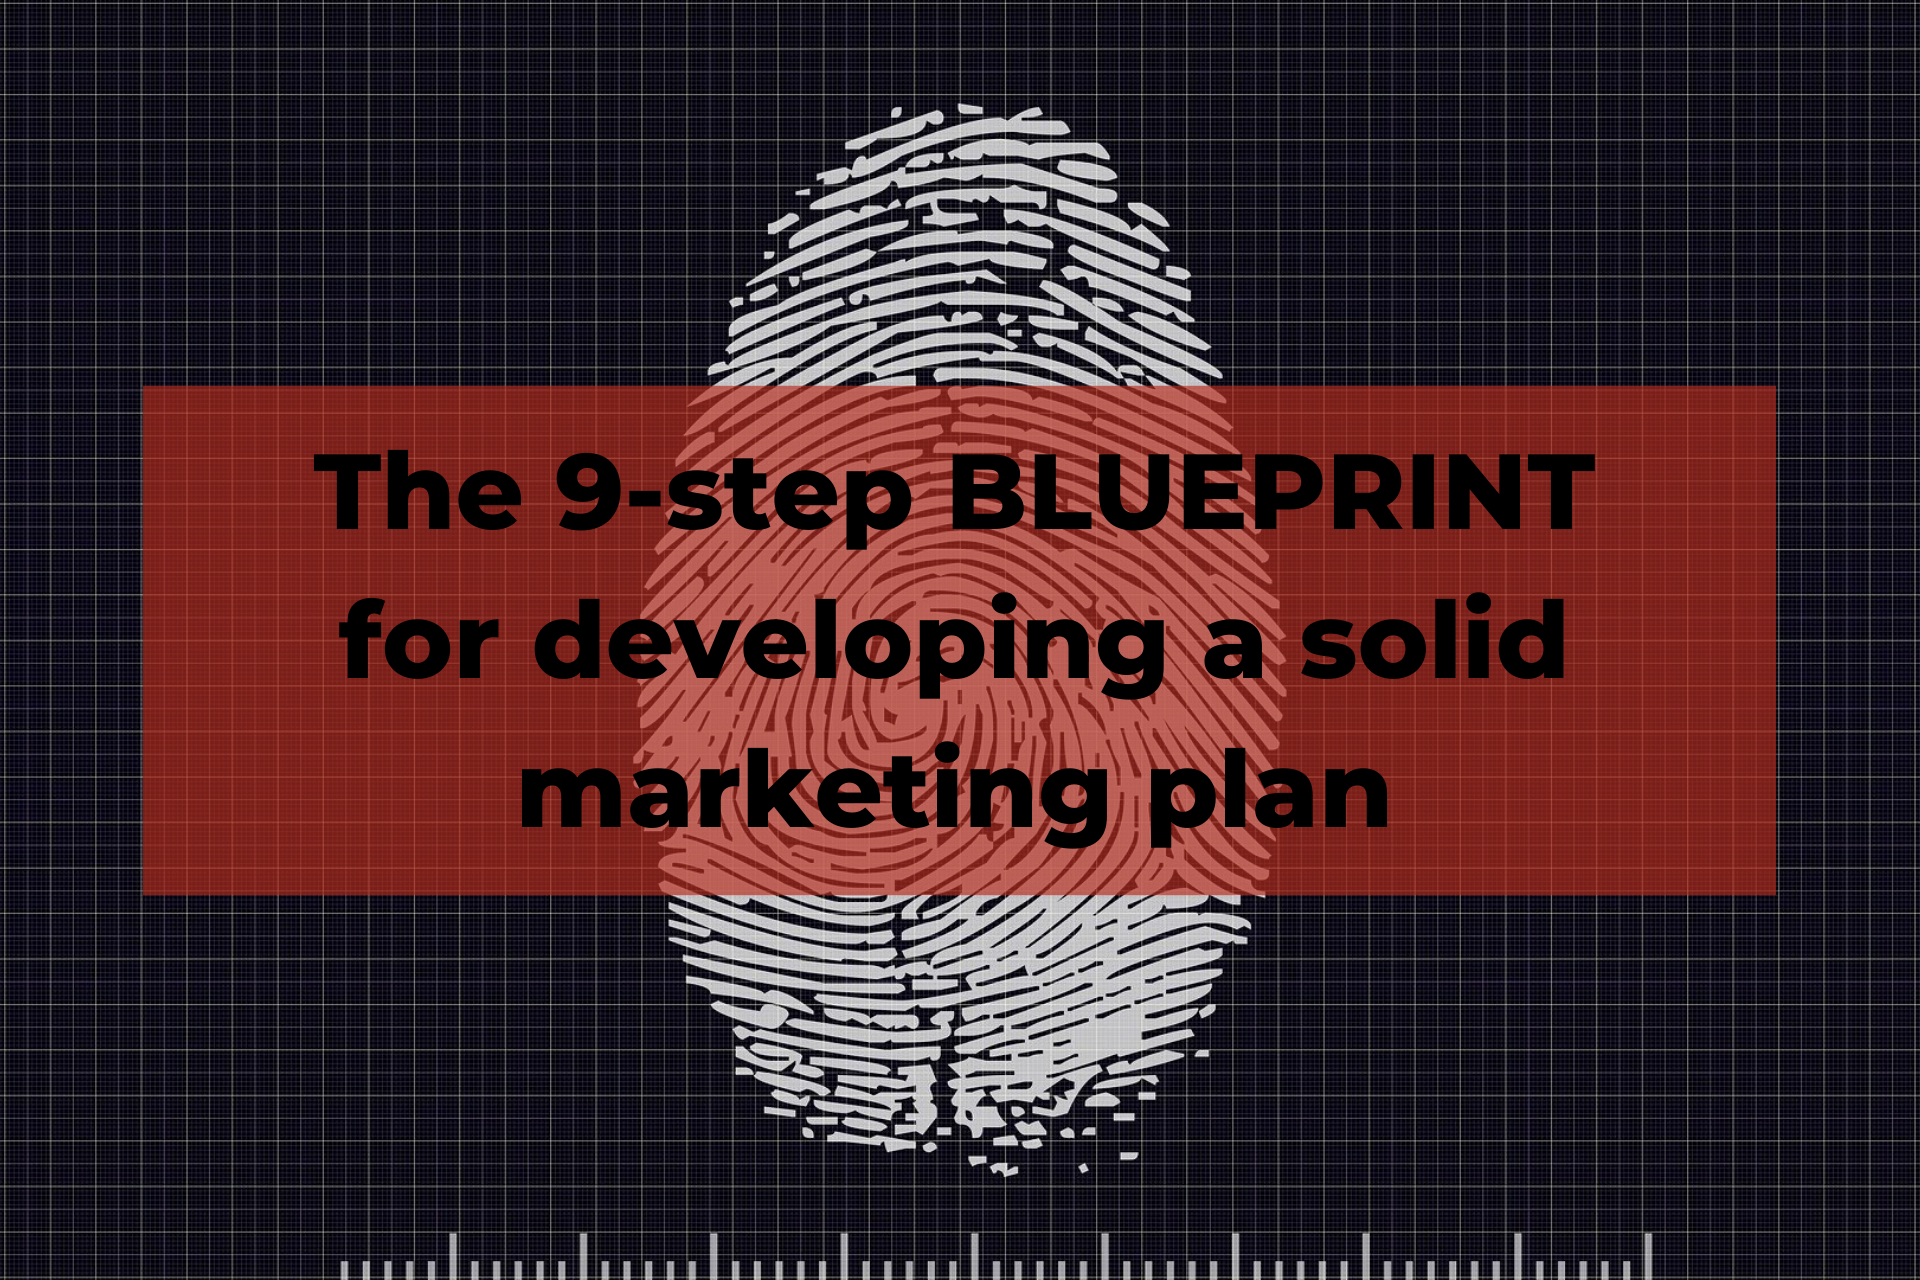 The 9-step BLUEPRINT for developing a marketing plan